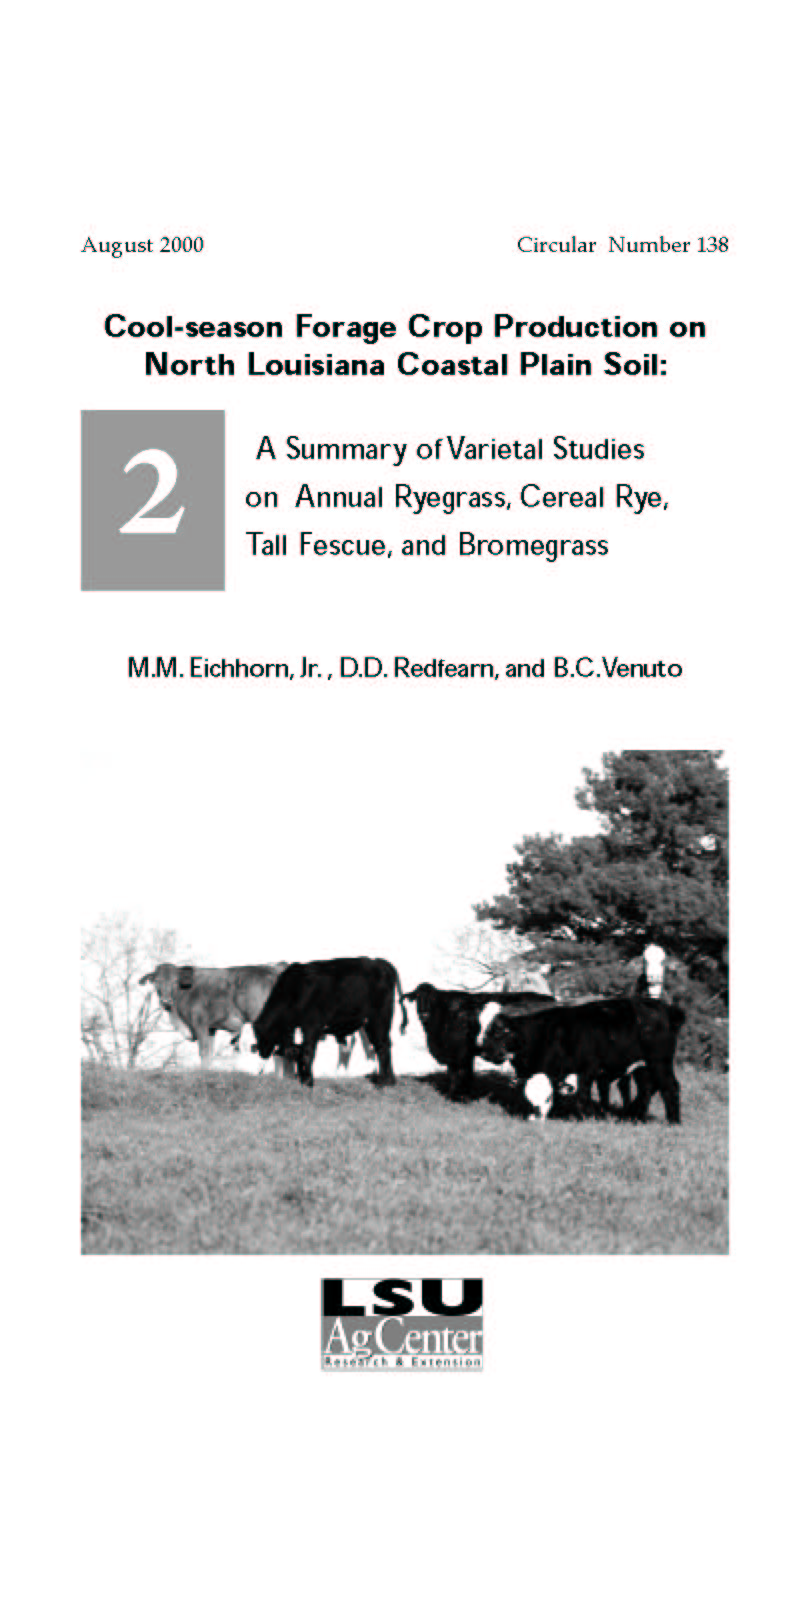 Cool-season Forage Crop Production on North Louisiana Coastal Plain Soil: A Summary of Varietal Studies on Annual Ryegrass Cereal Rye Tall Fescue and Bromegrass (August 2000)